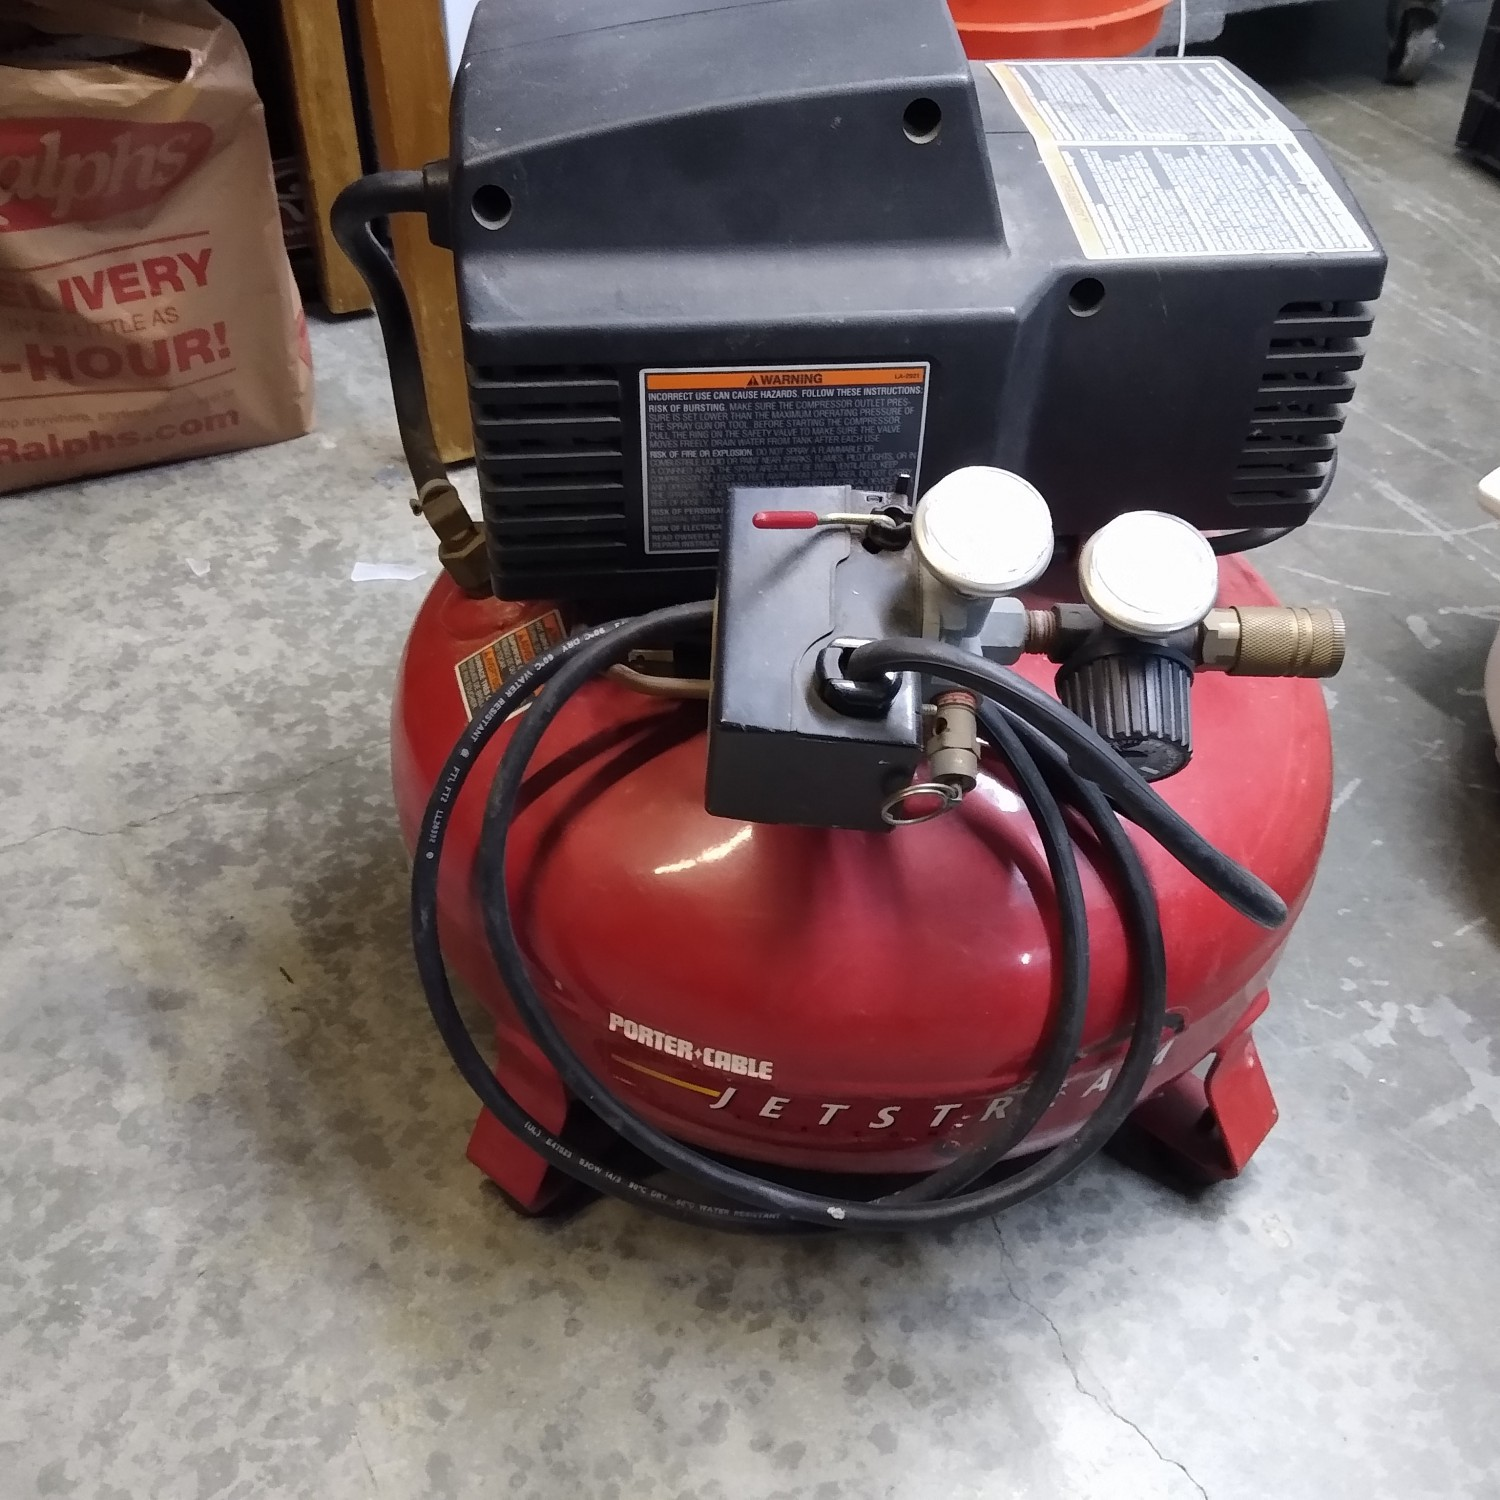 Porter Cable 6 gallon compressor. Works great.